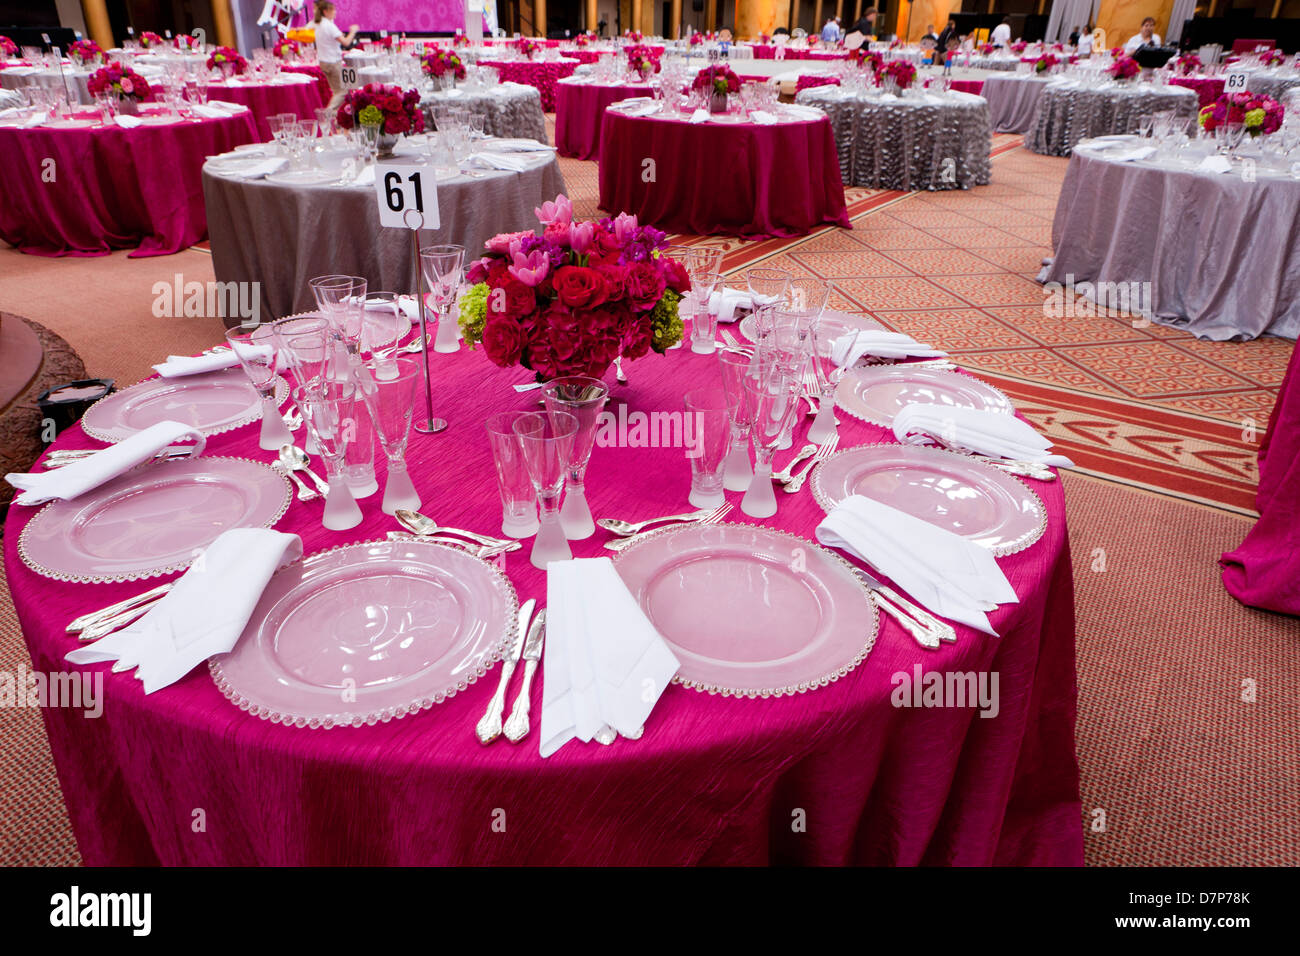 Dining table settings for large event - Stock Image